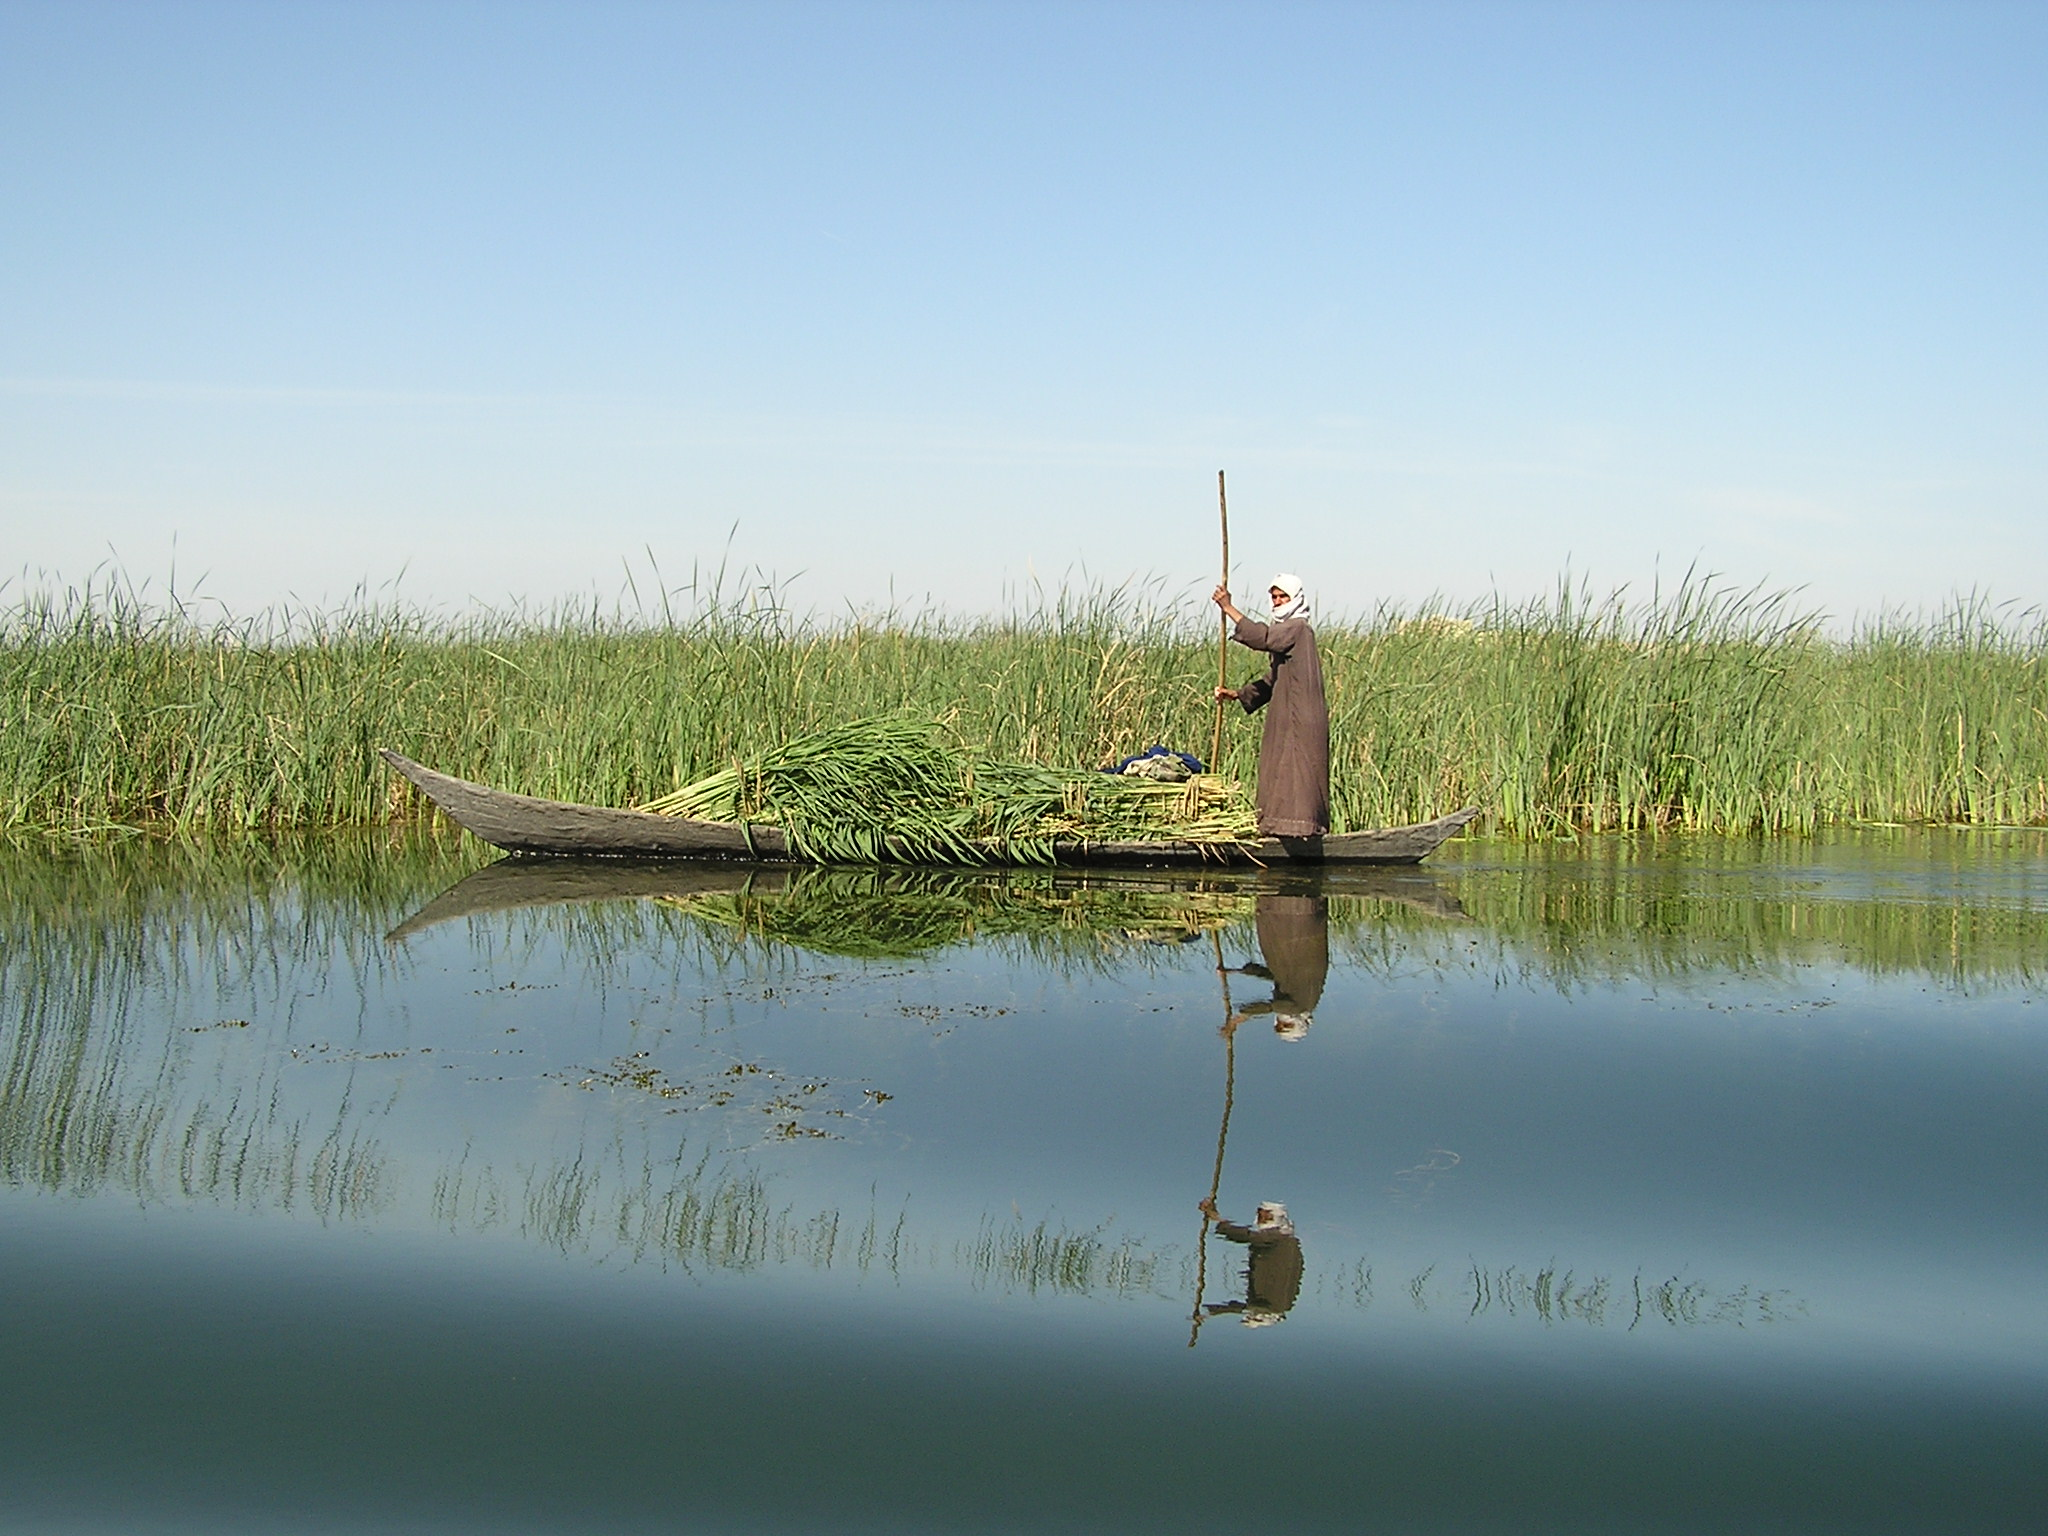 Restoring Iraq's 'Garden of Eden'- The Mesopotamian Marshlands